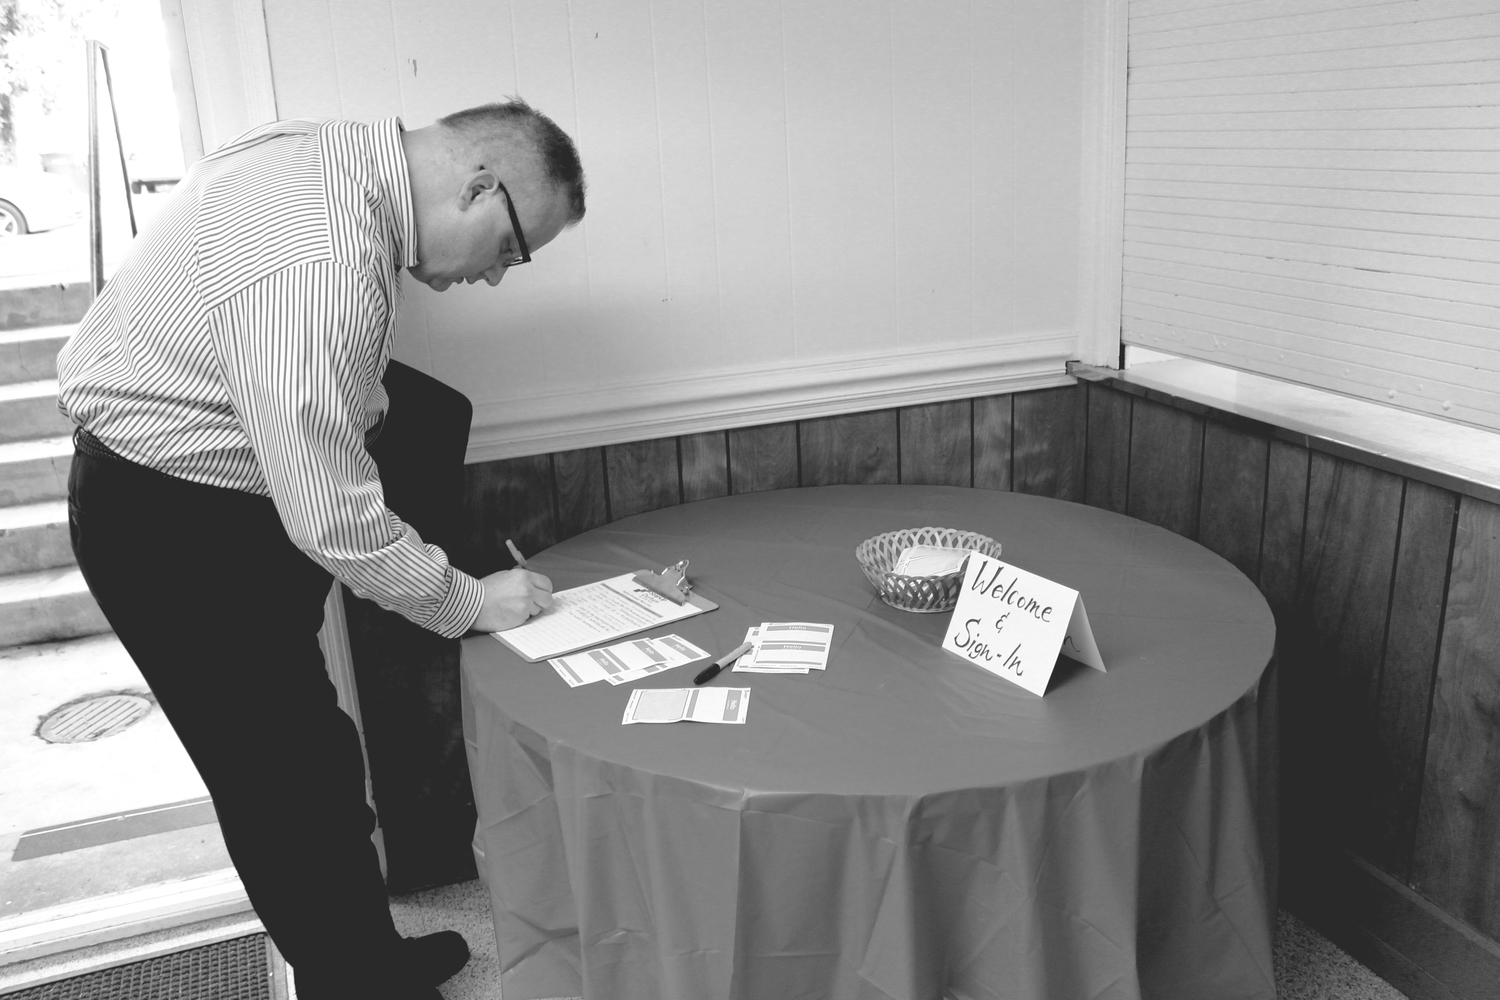 Rev. Alan Felton of Resurrection UMC checking in and preparing for the morning's discussion on faith, business, and hiring